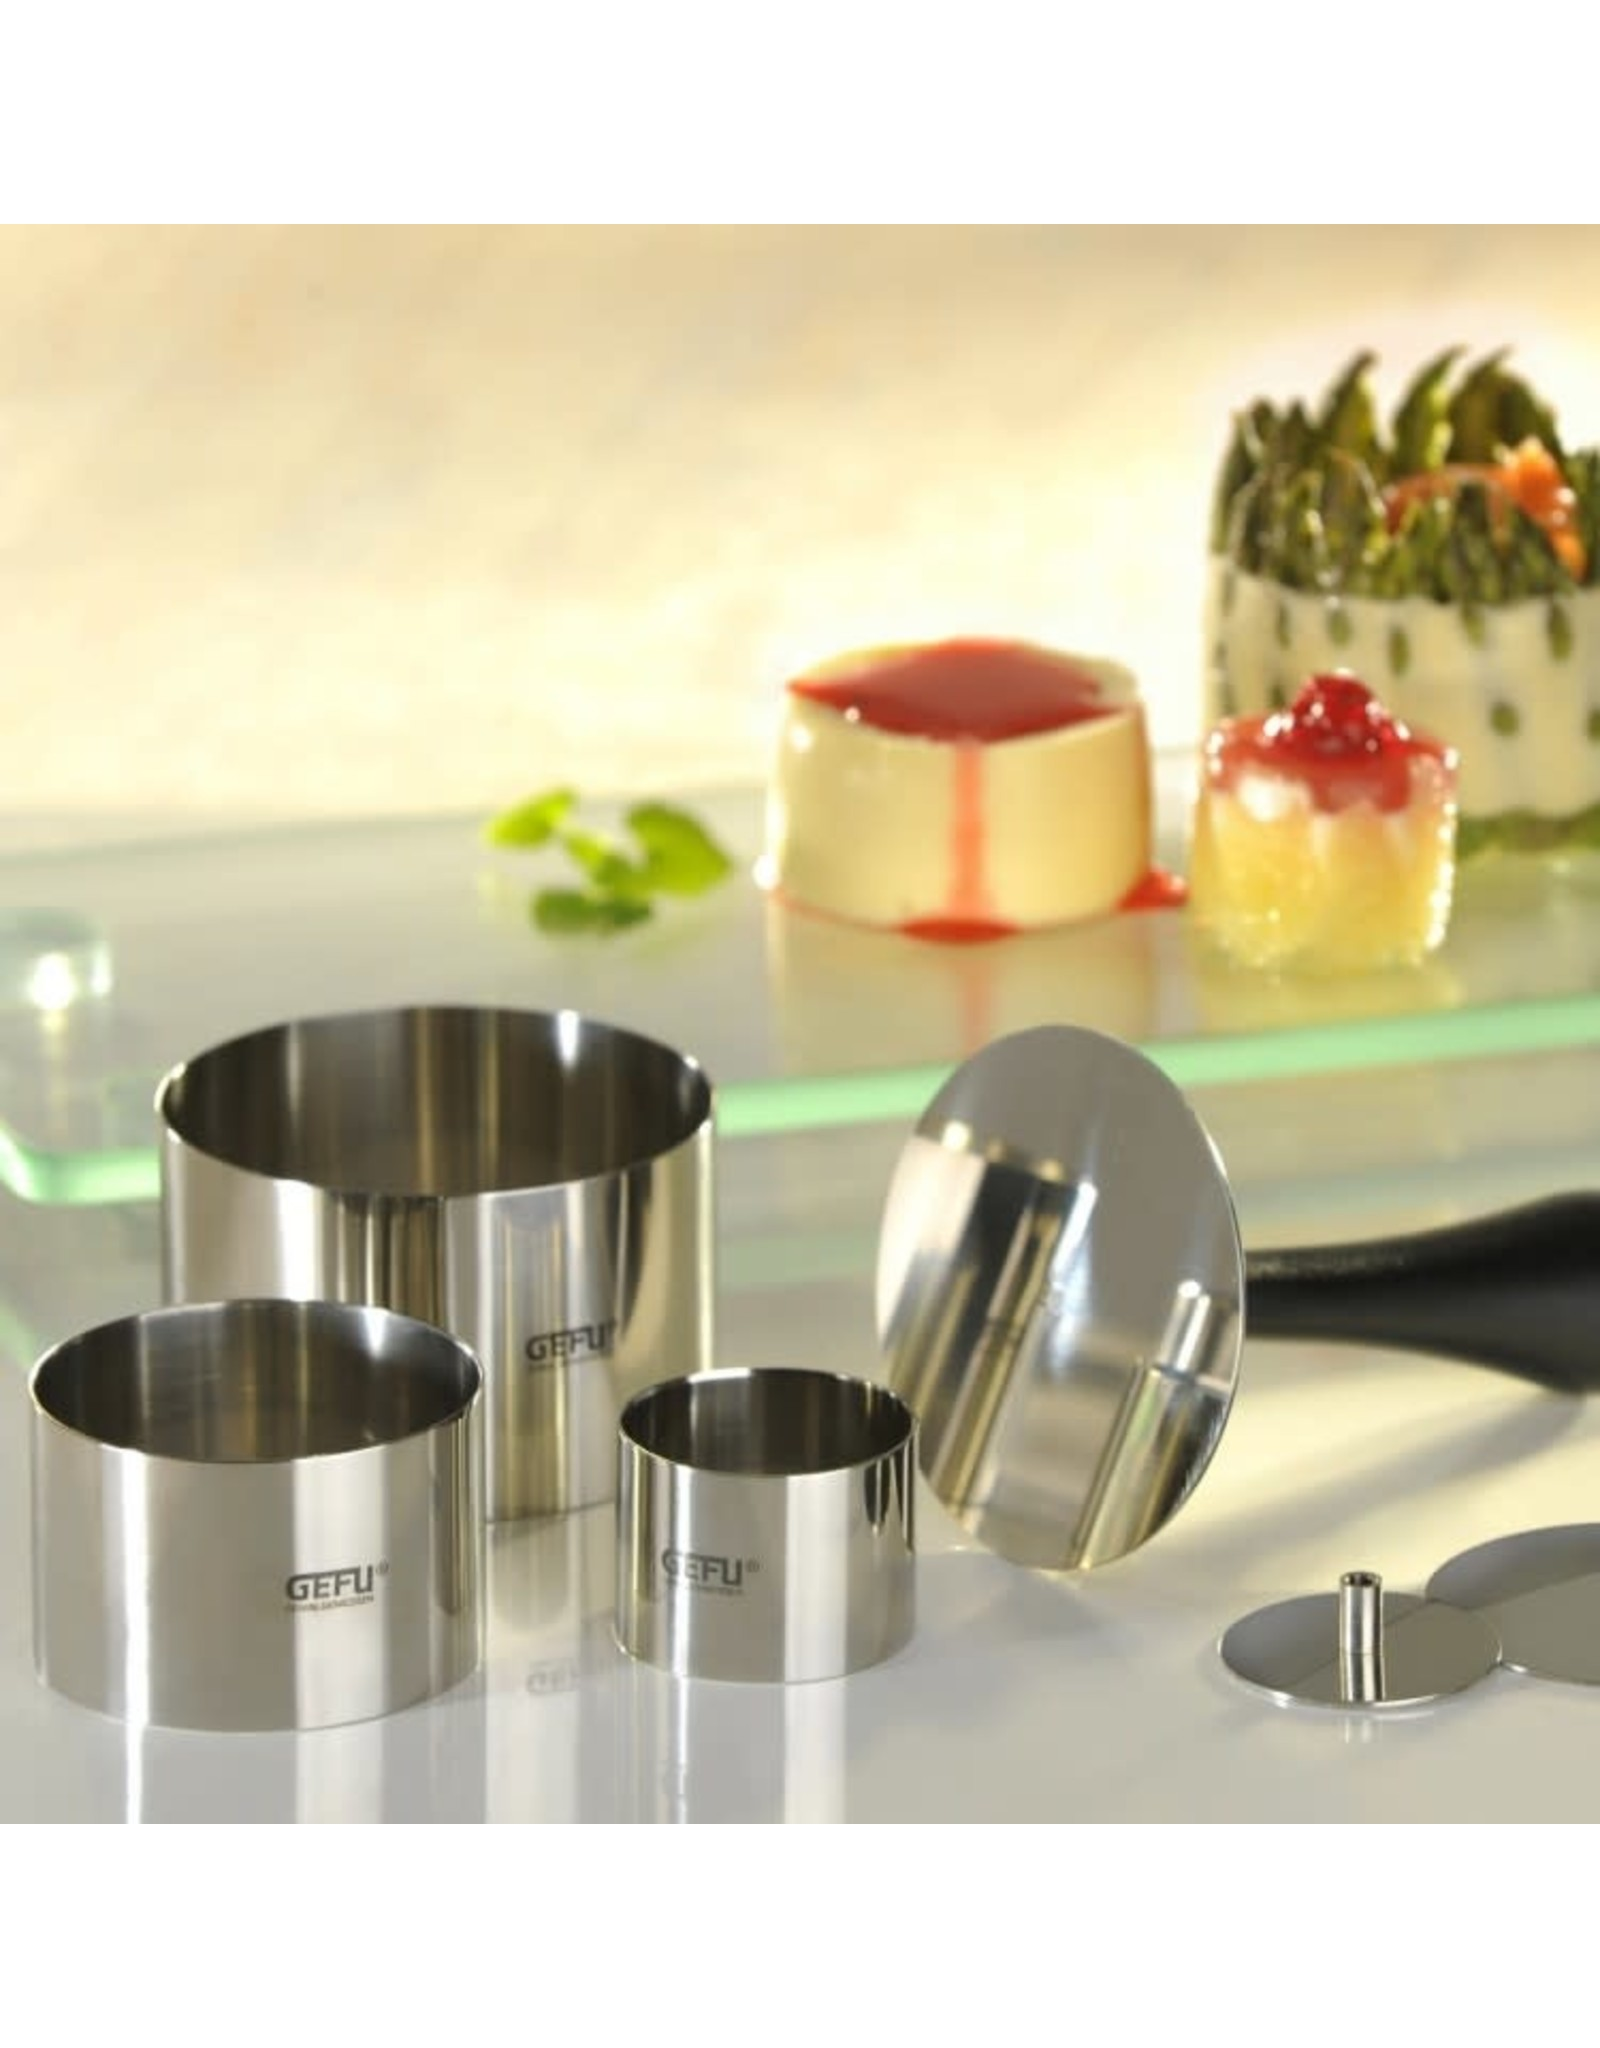 Gefu. Professional dish-ring set FORMIDABLE, 10 pcs.